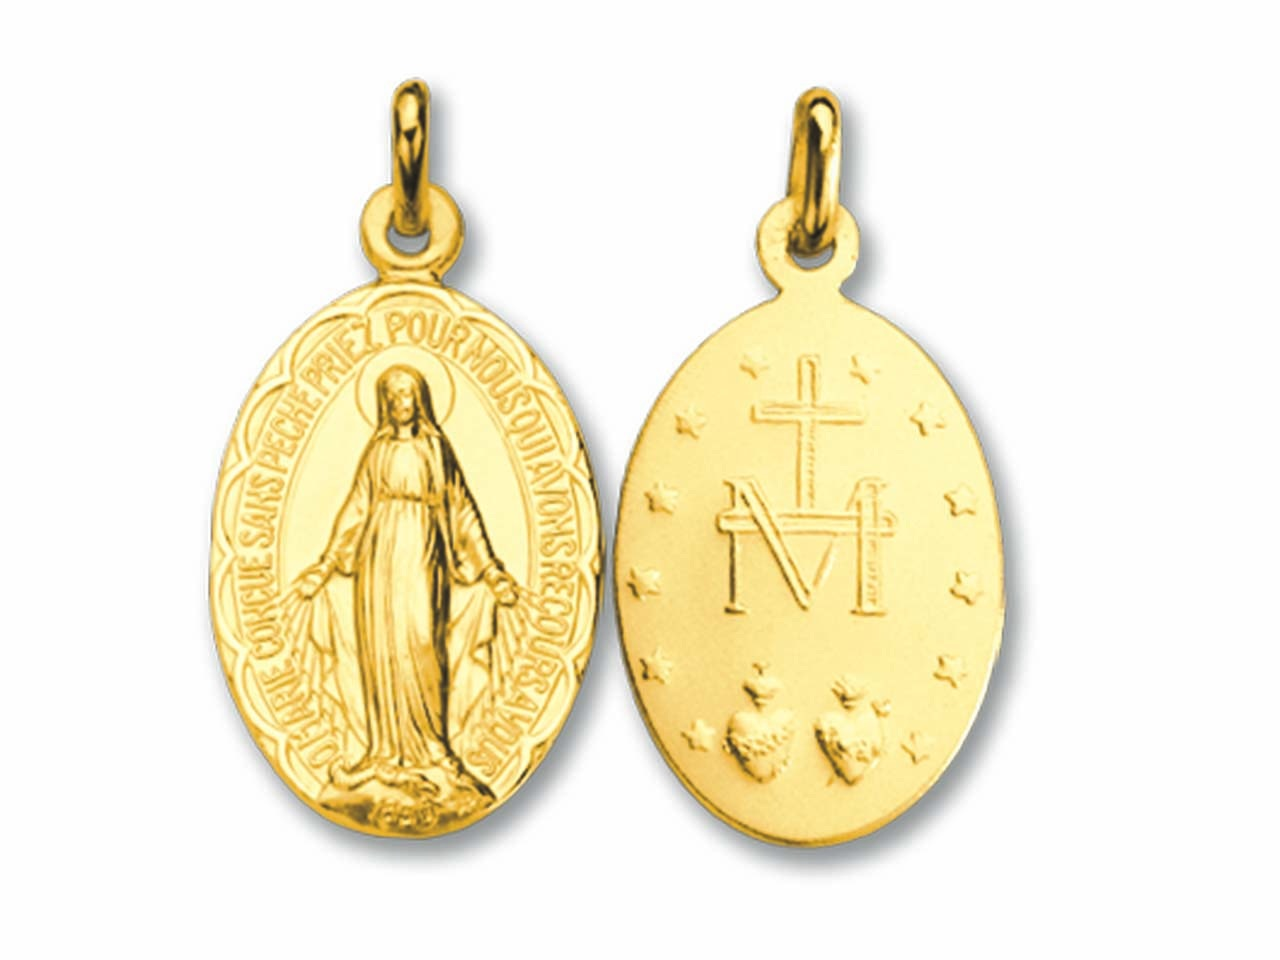 Médaille Vierge miraculeuse, Or jaune 18k